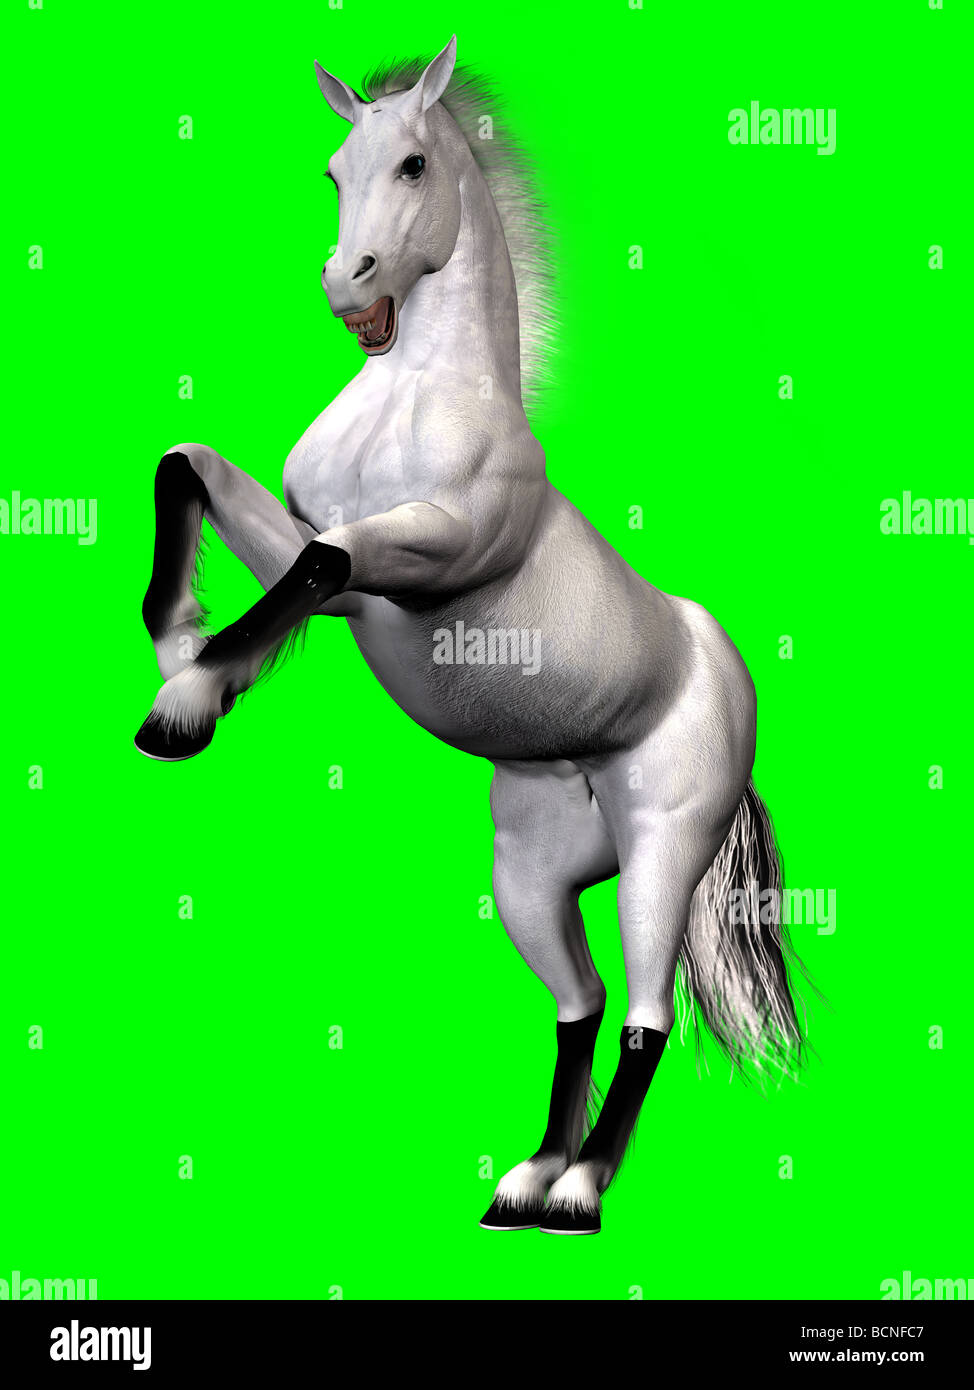 A white stallion rearing up in anger, defending itself or its mate. - Stock Image